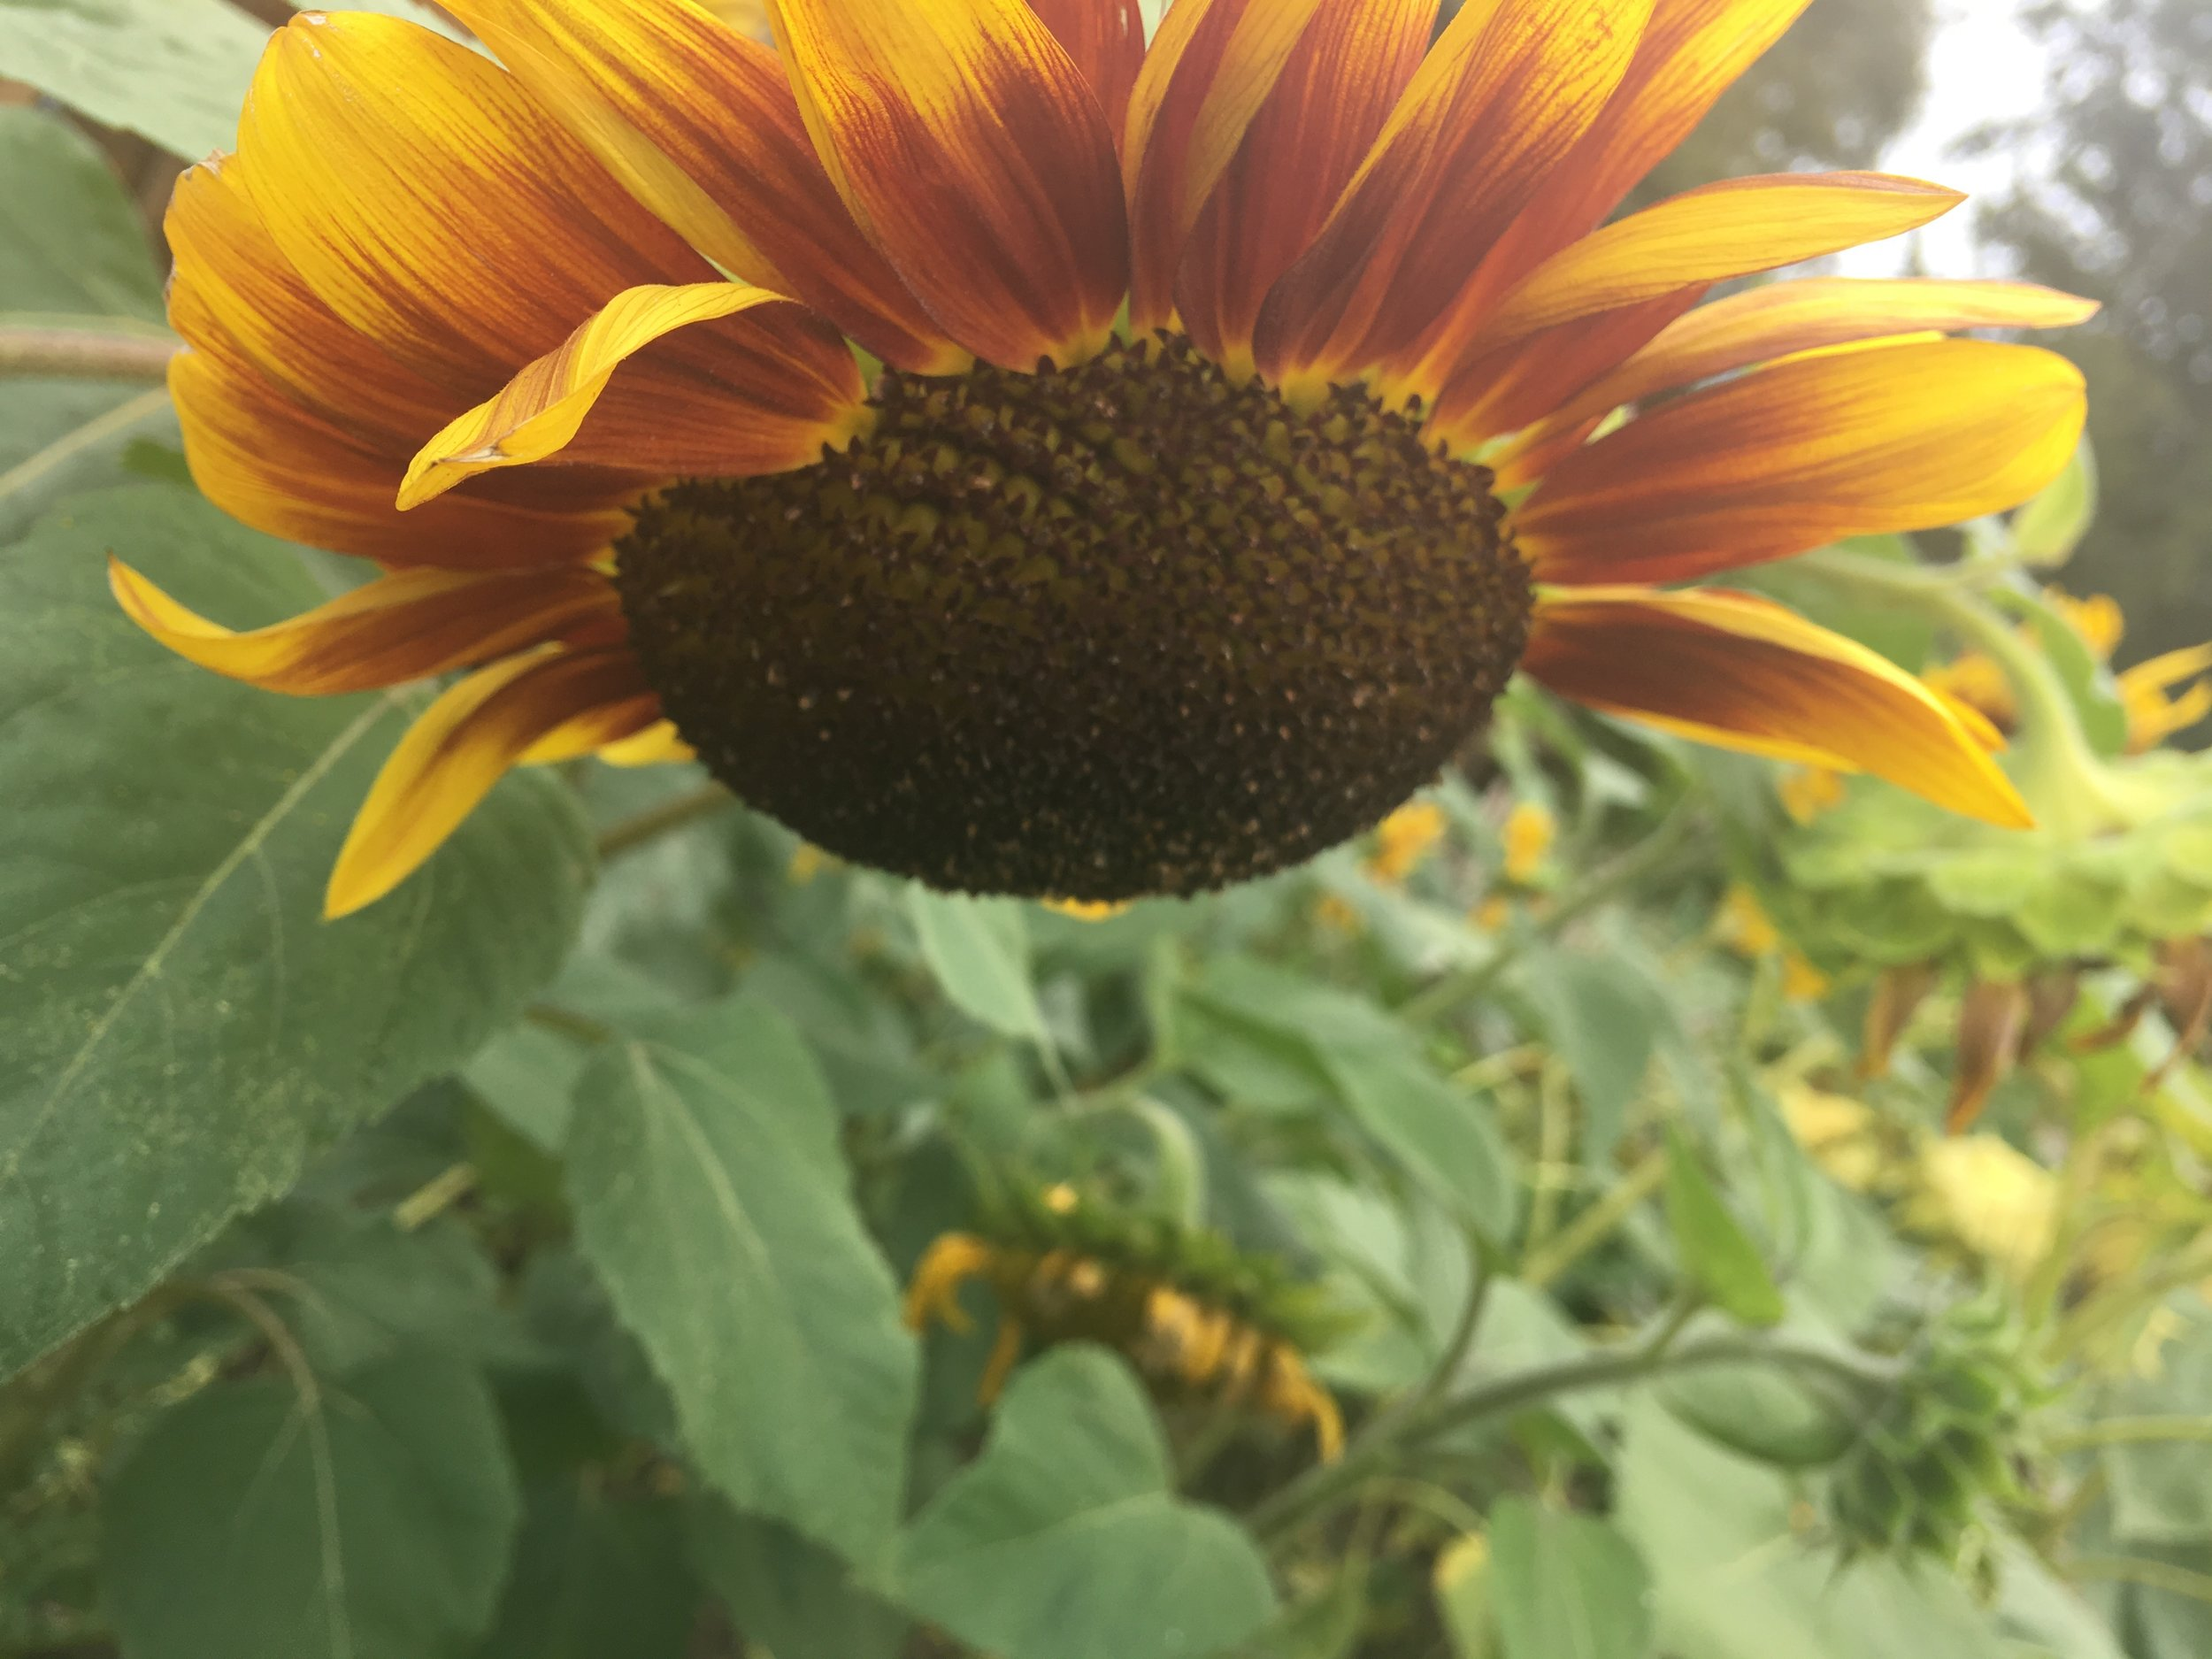 Sunflowers in bloom at Goscote Greenacres